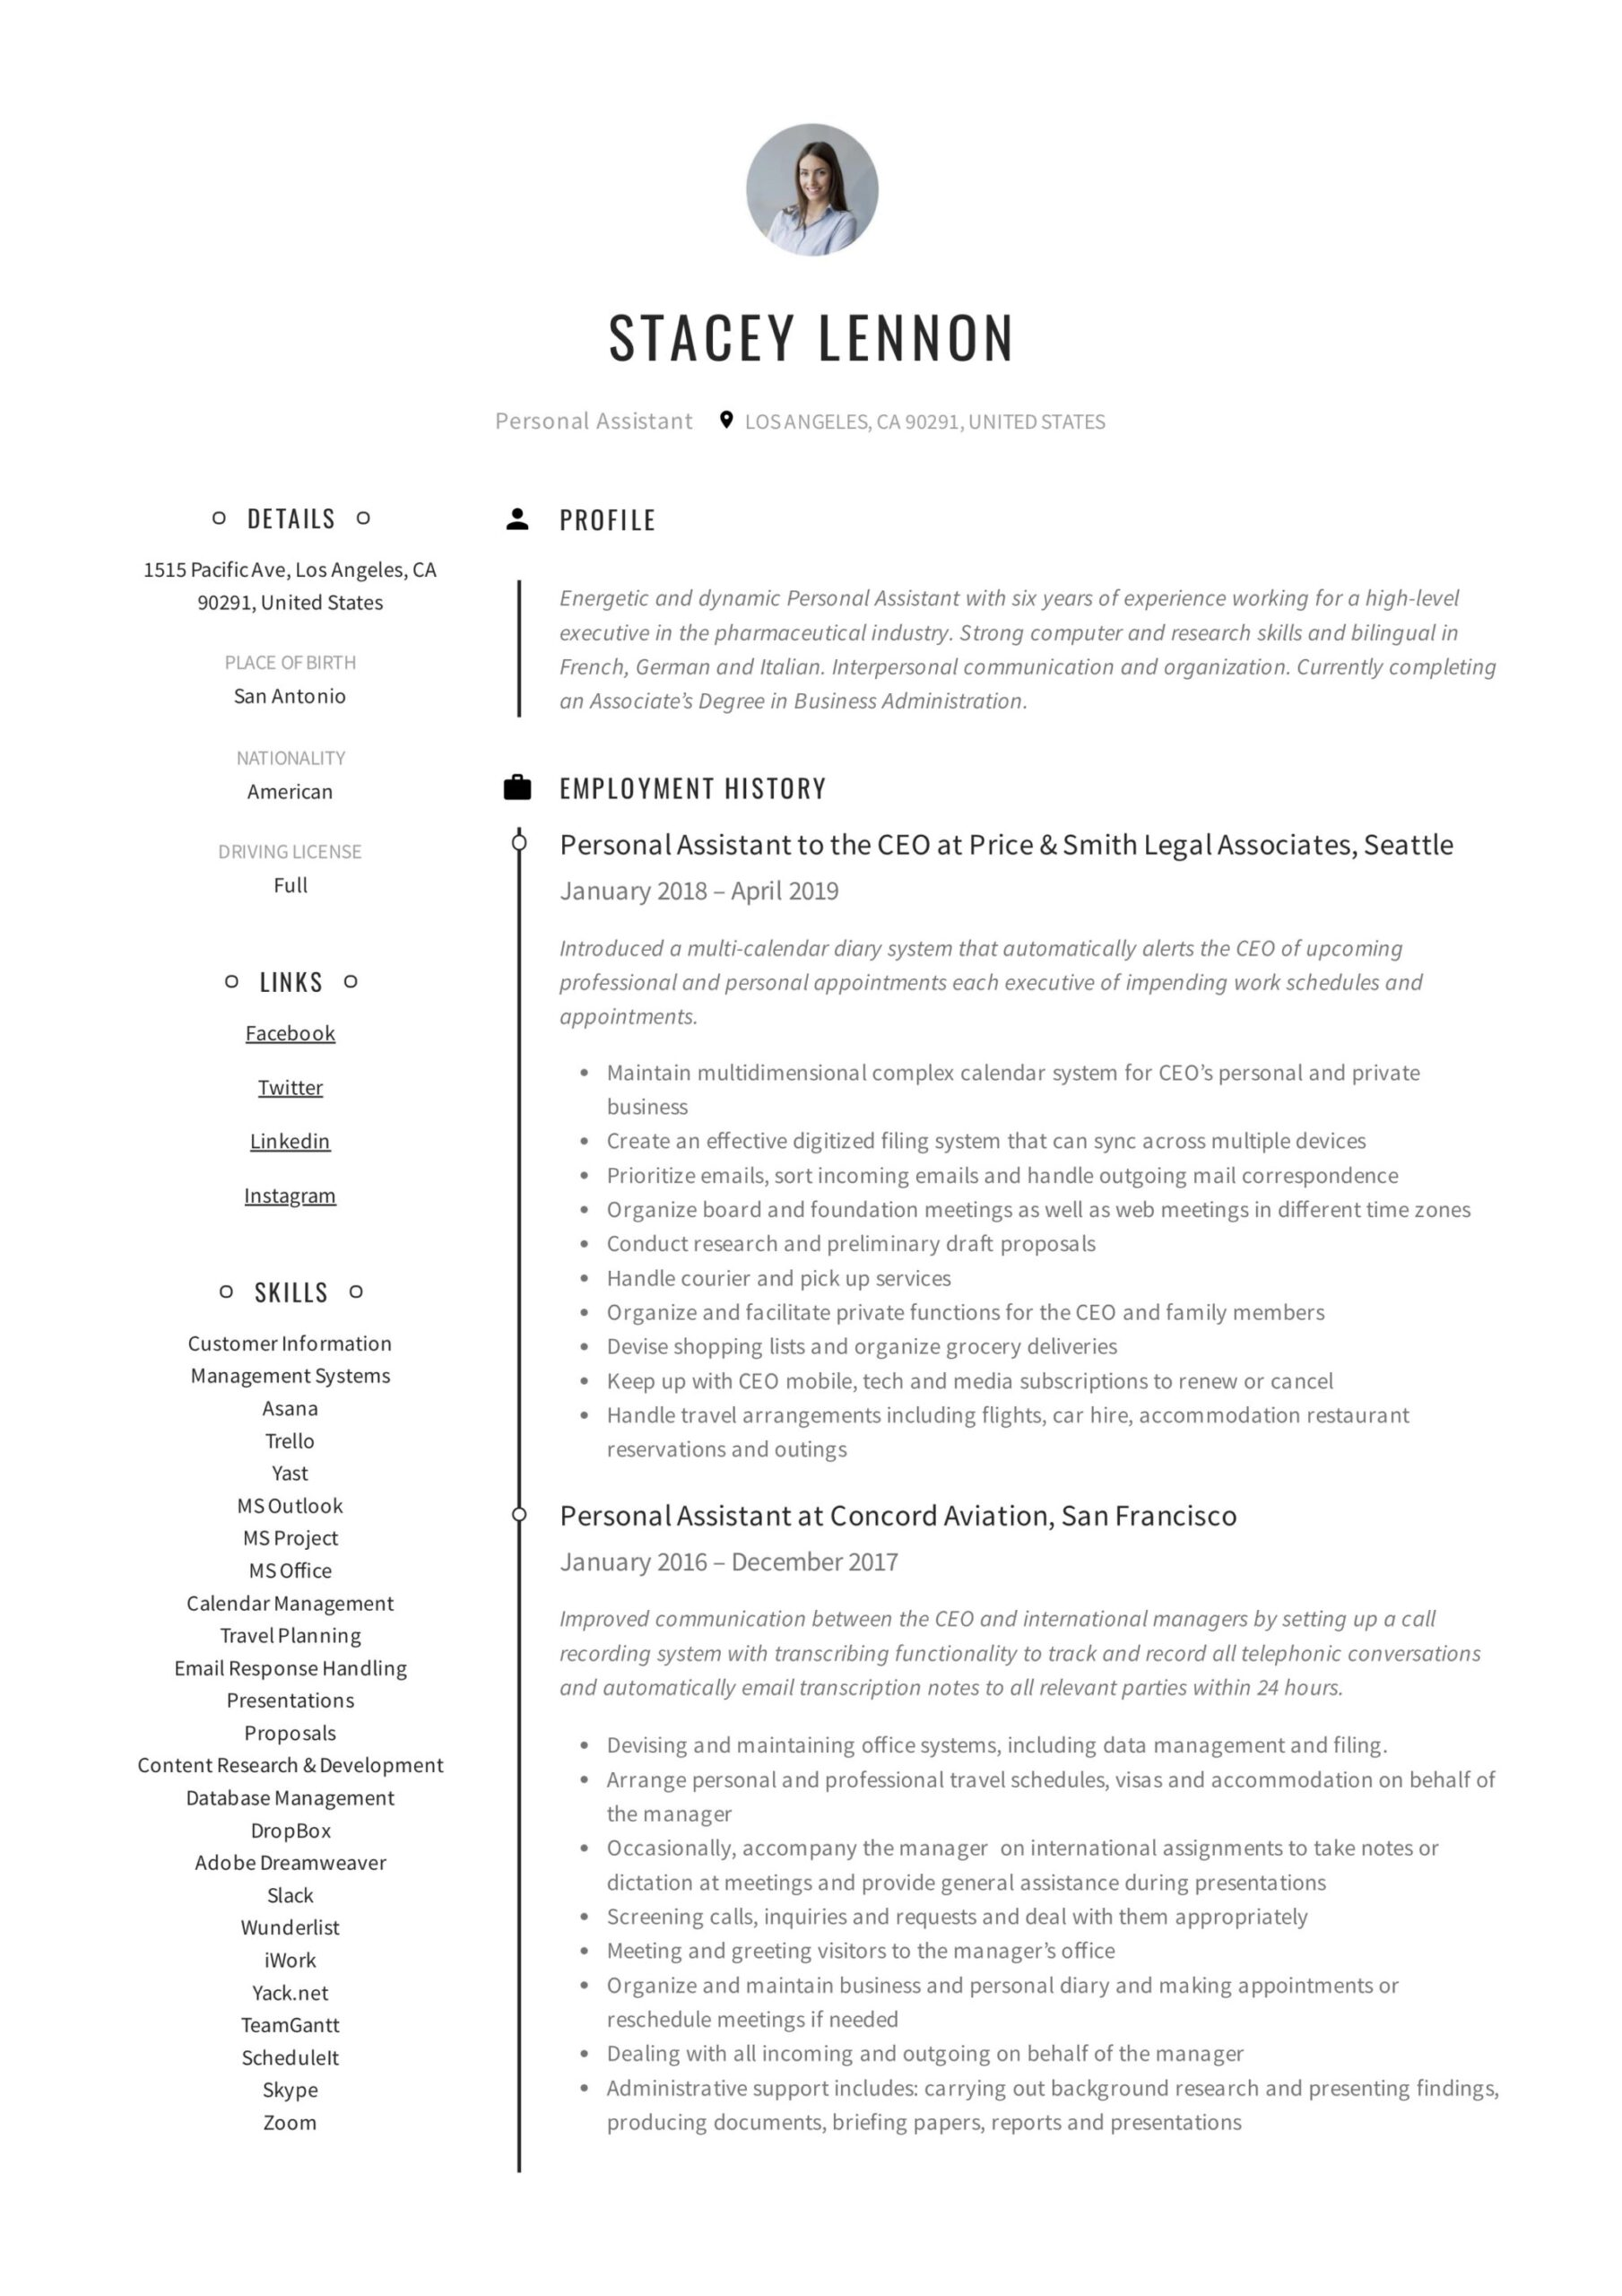 personal assistant resume writing guide templates pdf job duties for without dates Resume Personal Assistant Job Duties For Resume